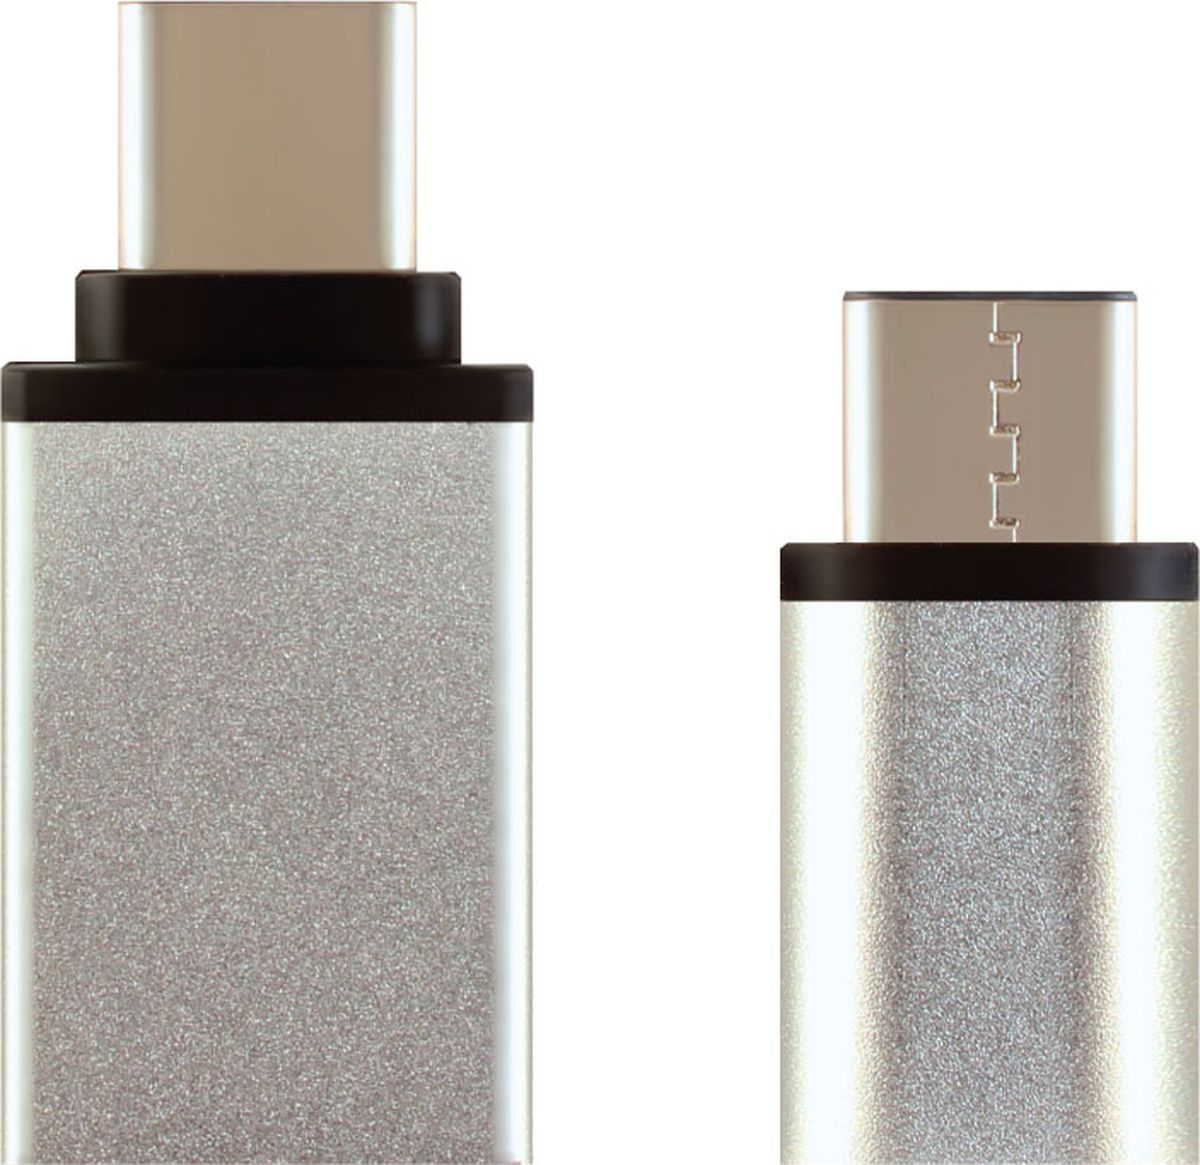 Ginzzu GC-885S, Silver комплект переходников Type-C - microUSB / USB 3.0 cy u3 199 wh usb 3 0 type c male to type a male data cable